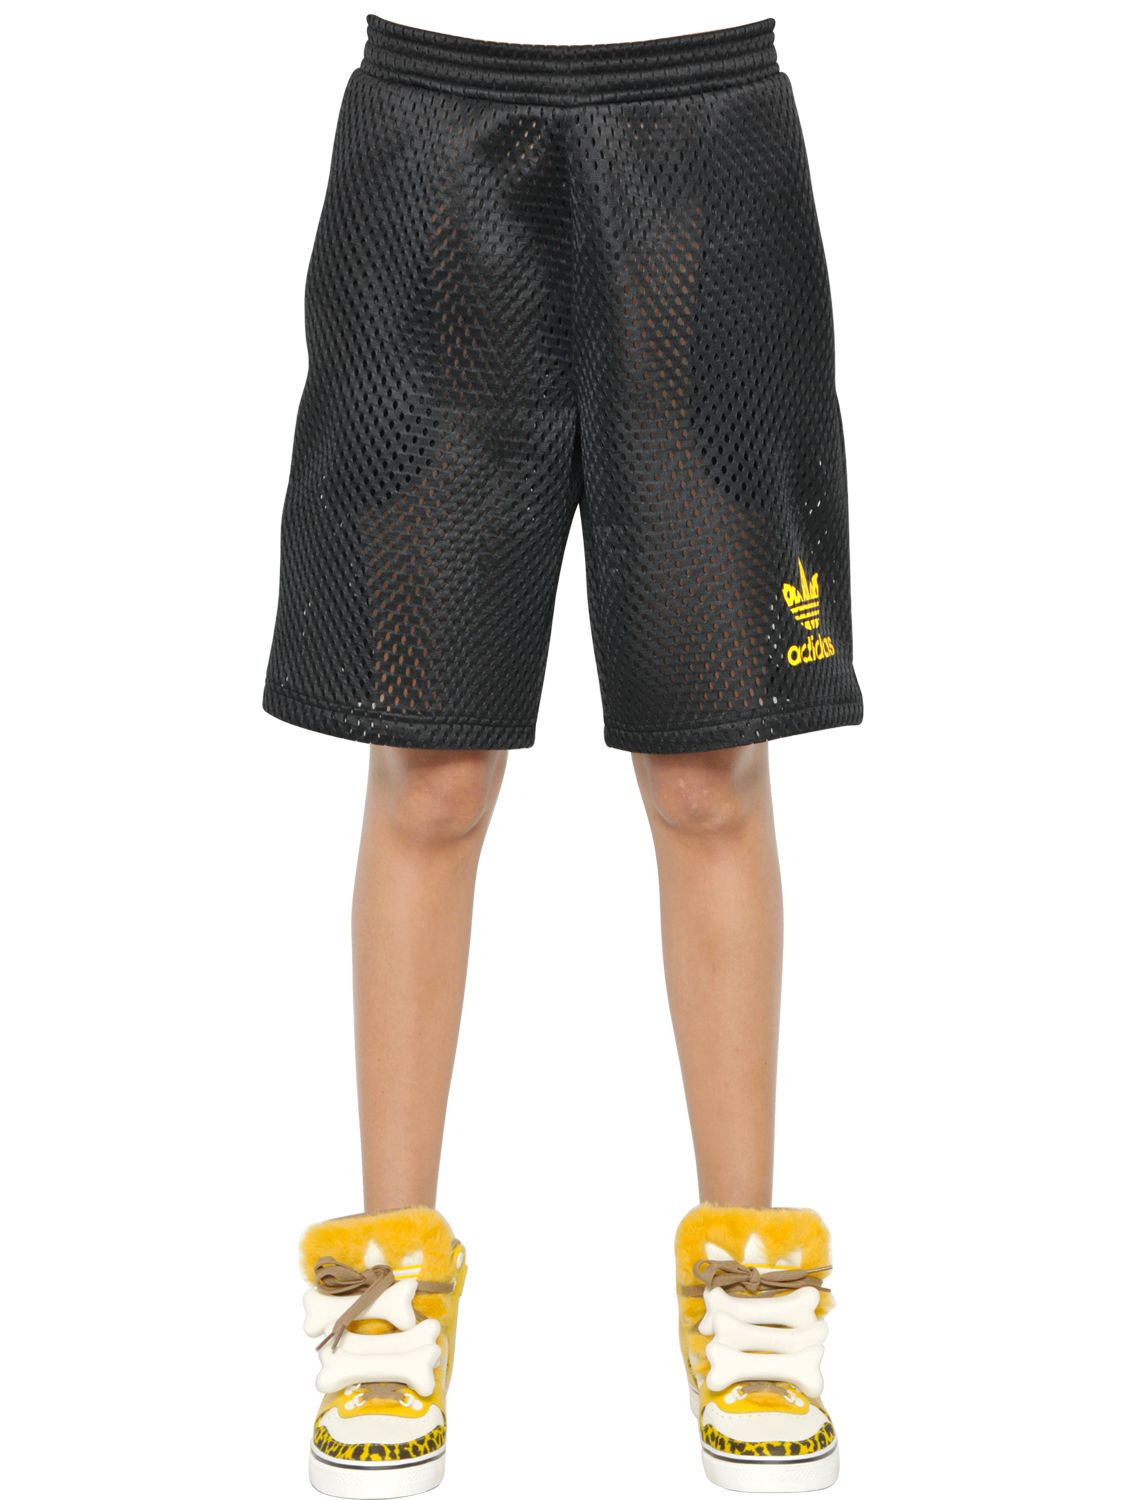 Toptie Basketball Shorts For Men, Mesh Design Activewear with Side Pockets, Sport Training Shorts. Sold by Bidlessnow. $ Montane VKM Running Shorts - SS17 - Large - Black. Sold by GrowKart + 5. $ - $ TopTie Men's Basketball Shorts, Flag football Shorts No Pockets, MMA Pro Shorts.